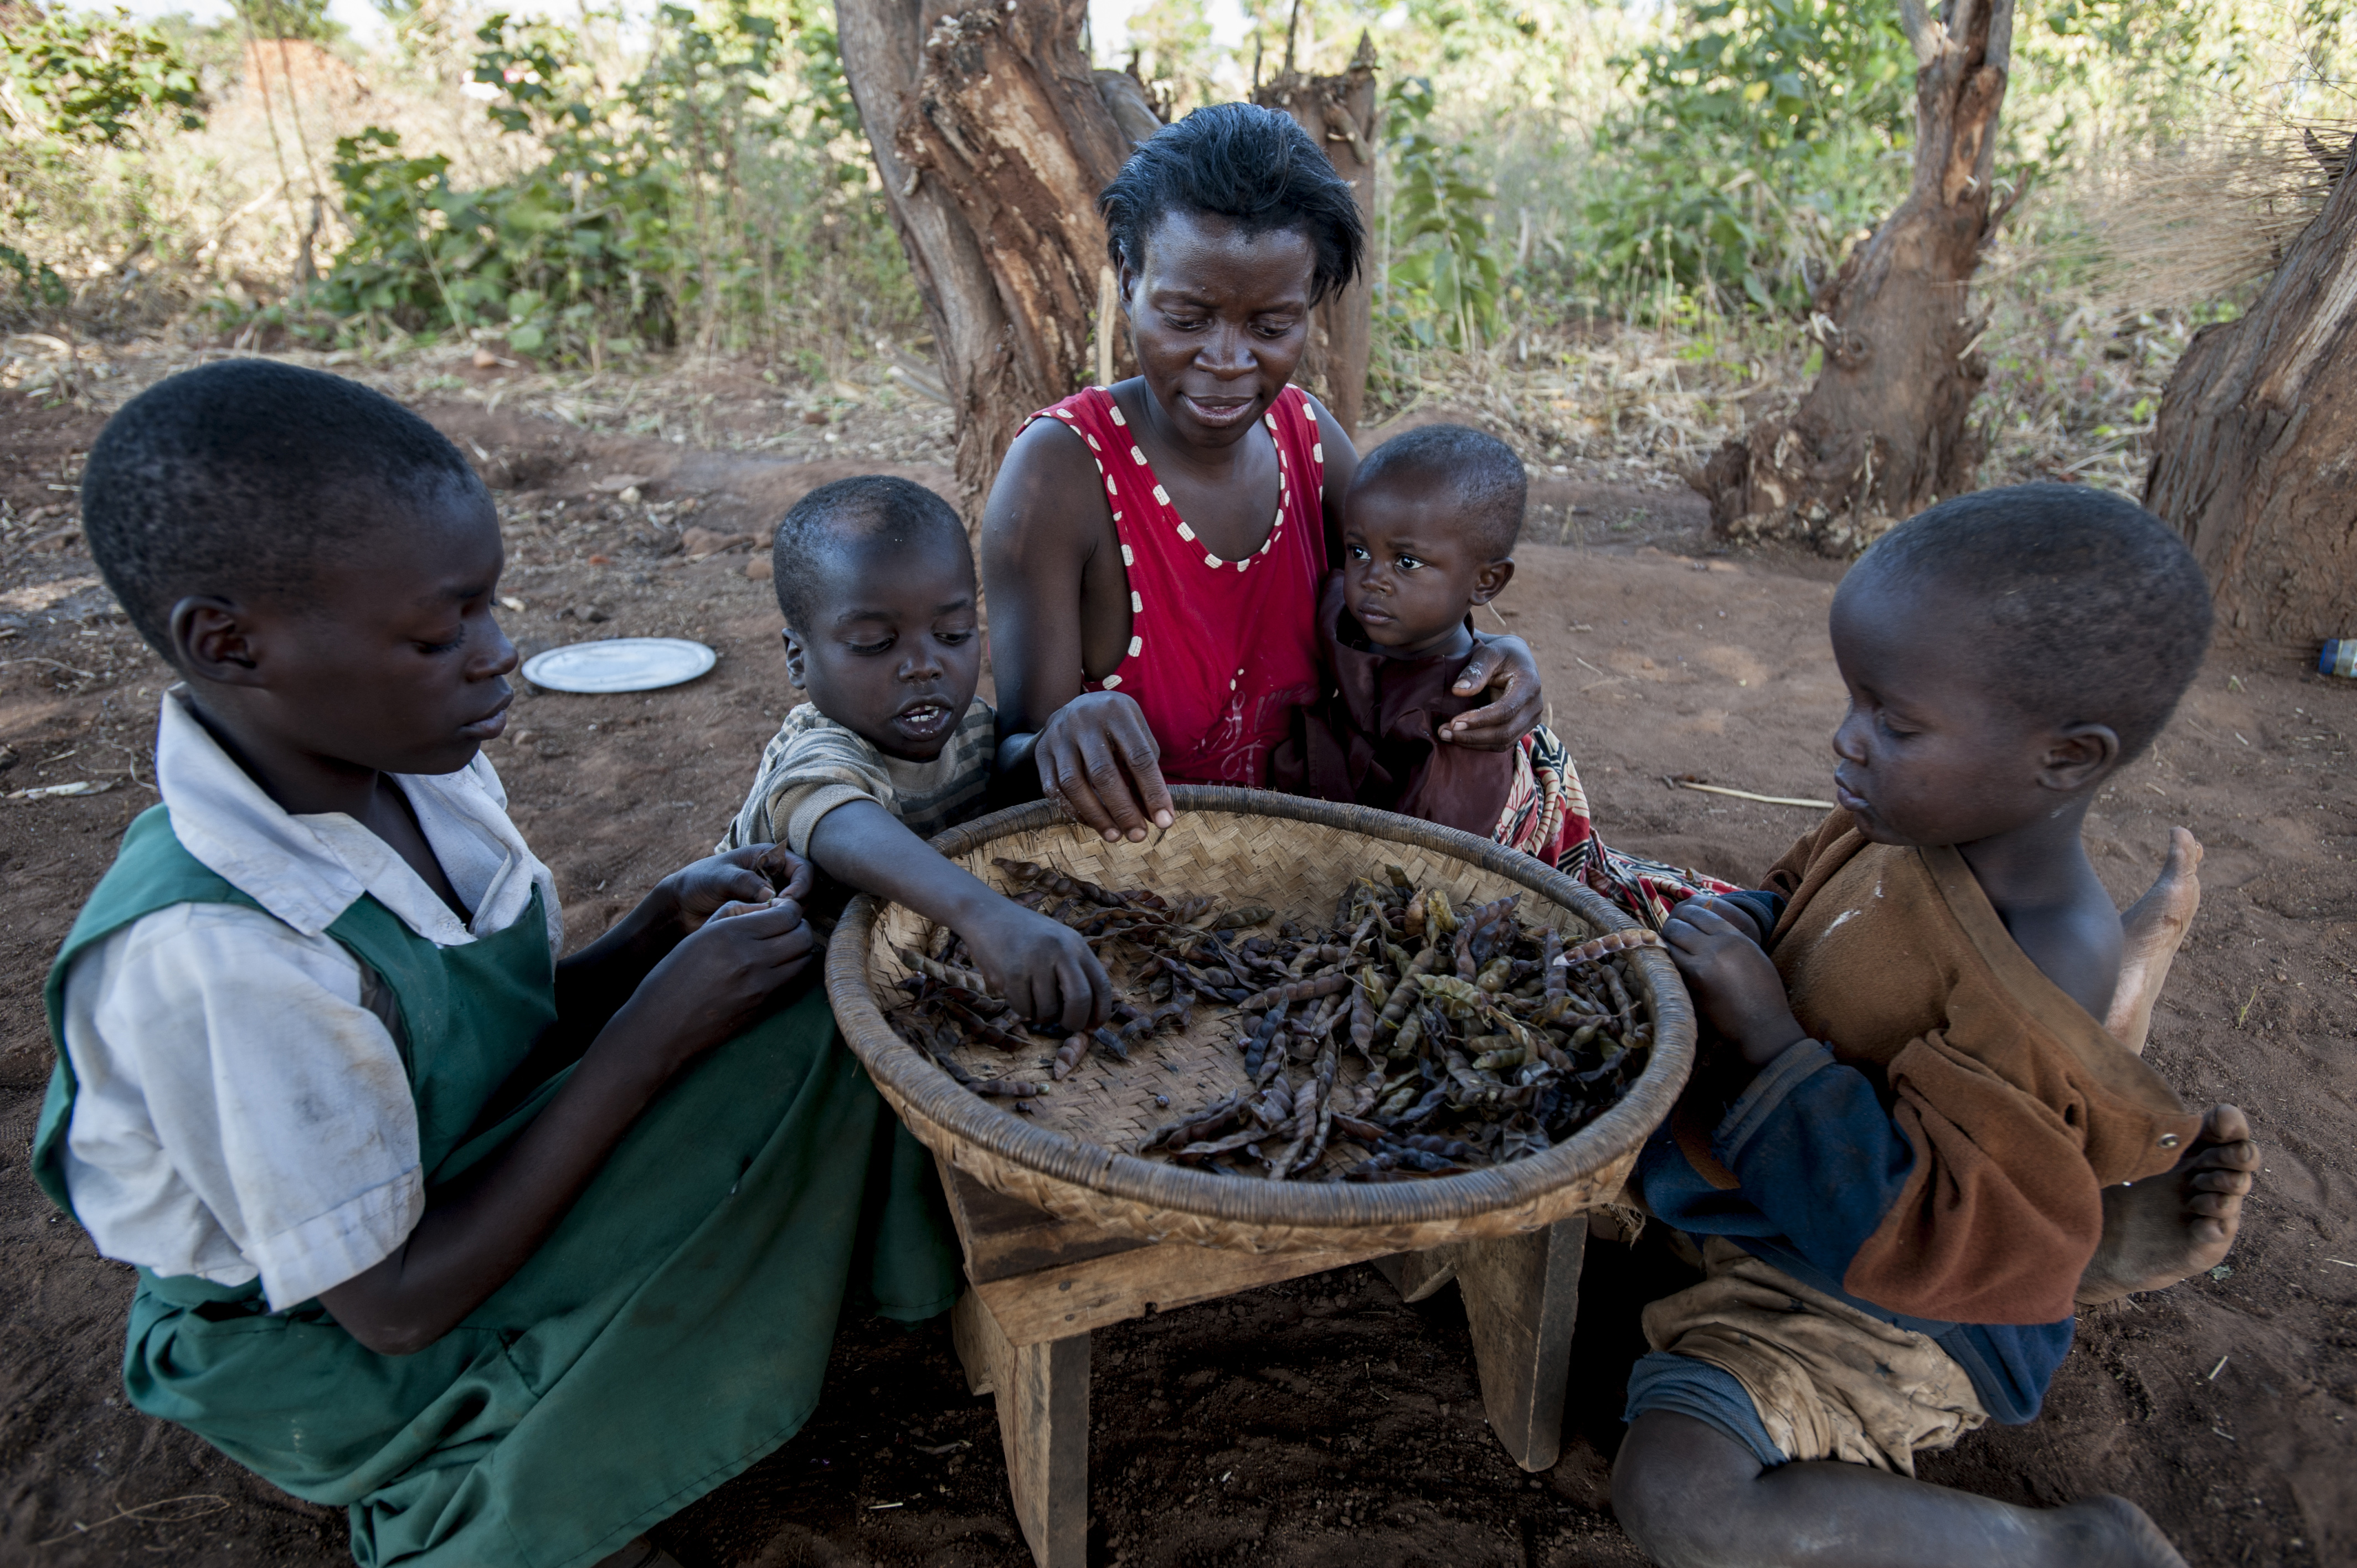 Alinafe (center) and her children eat dried peas amid Malawi's drought. Her oldest daughter (from left) Janet is 10, Kevin is 8, Desire is 2, and Innocent is 6. Photo by Sebastian Rich for UNICEF